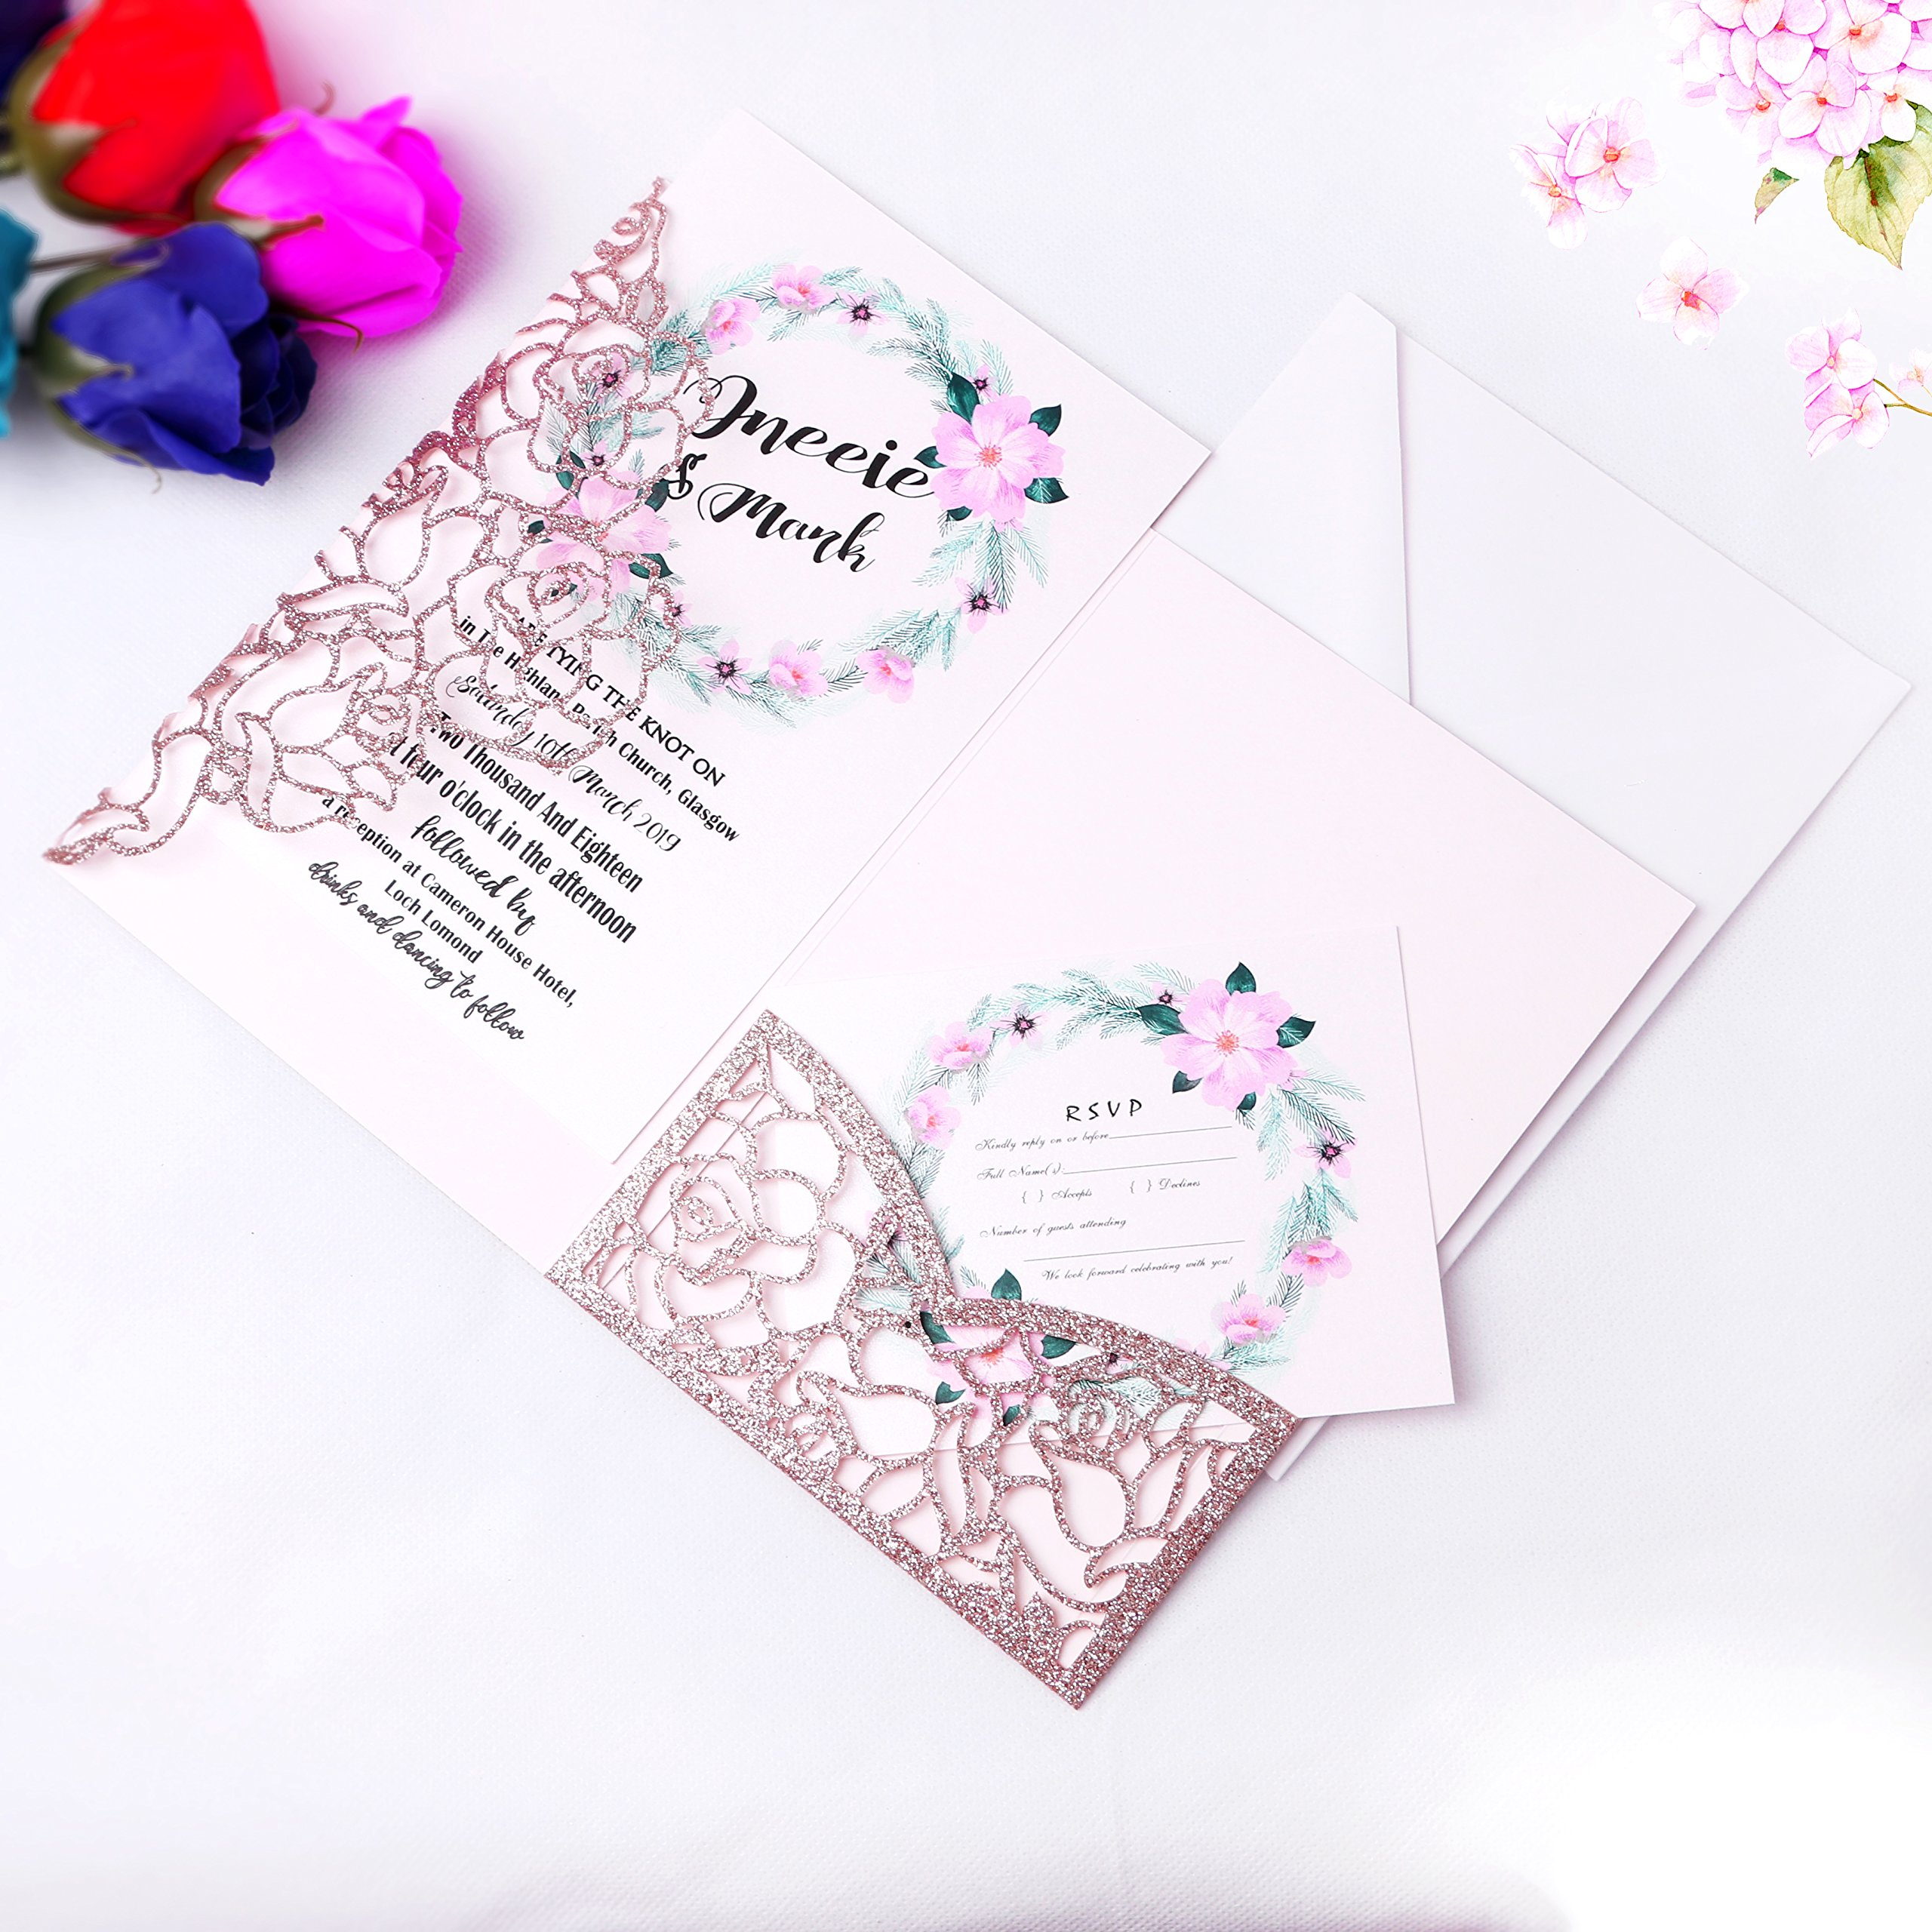 FEIYI 20 PCS 3 Folds Laser Cut Rose Shape Wedding Invitations Cards For Wedding Bridal Shower Engagement Birthday Graduation Invitation Cards (Rose Gold Glitter)